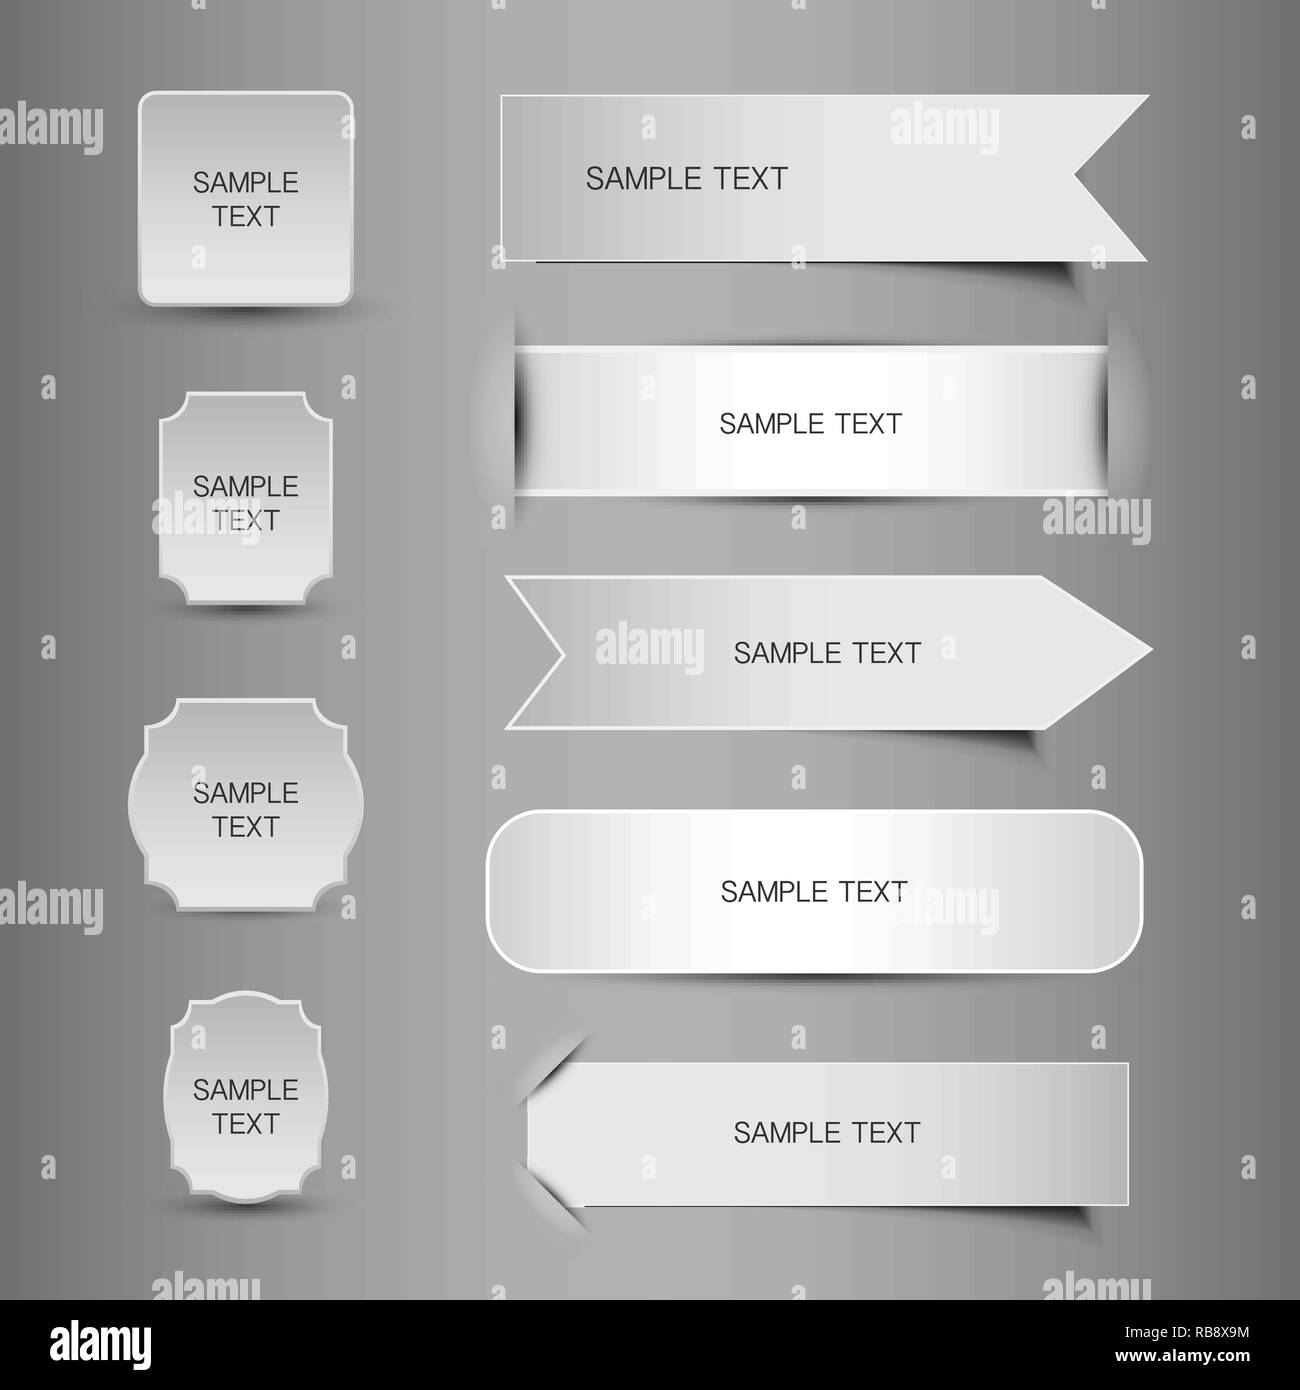 Set of Various Black and White Blank Tag, Label, Header or Banner Designs - Illustration in Editable Vector Format - Stock Vector